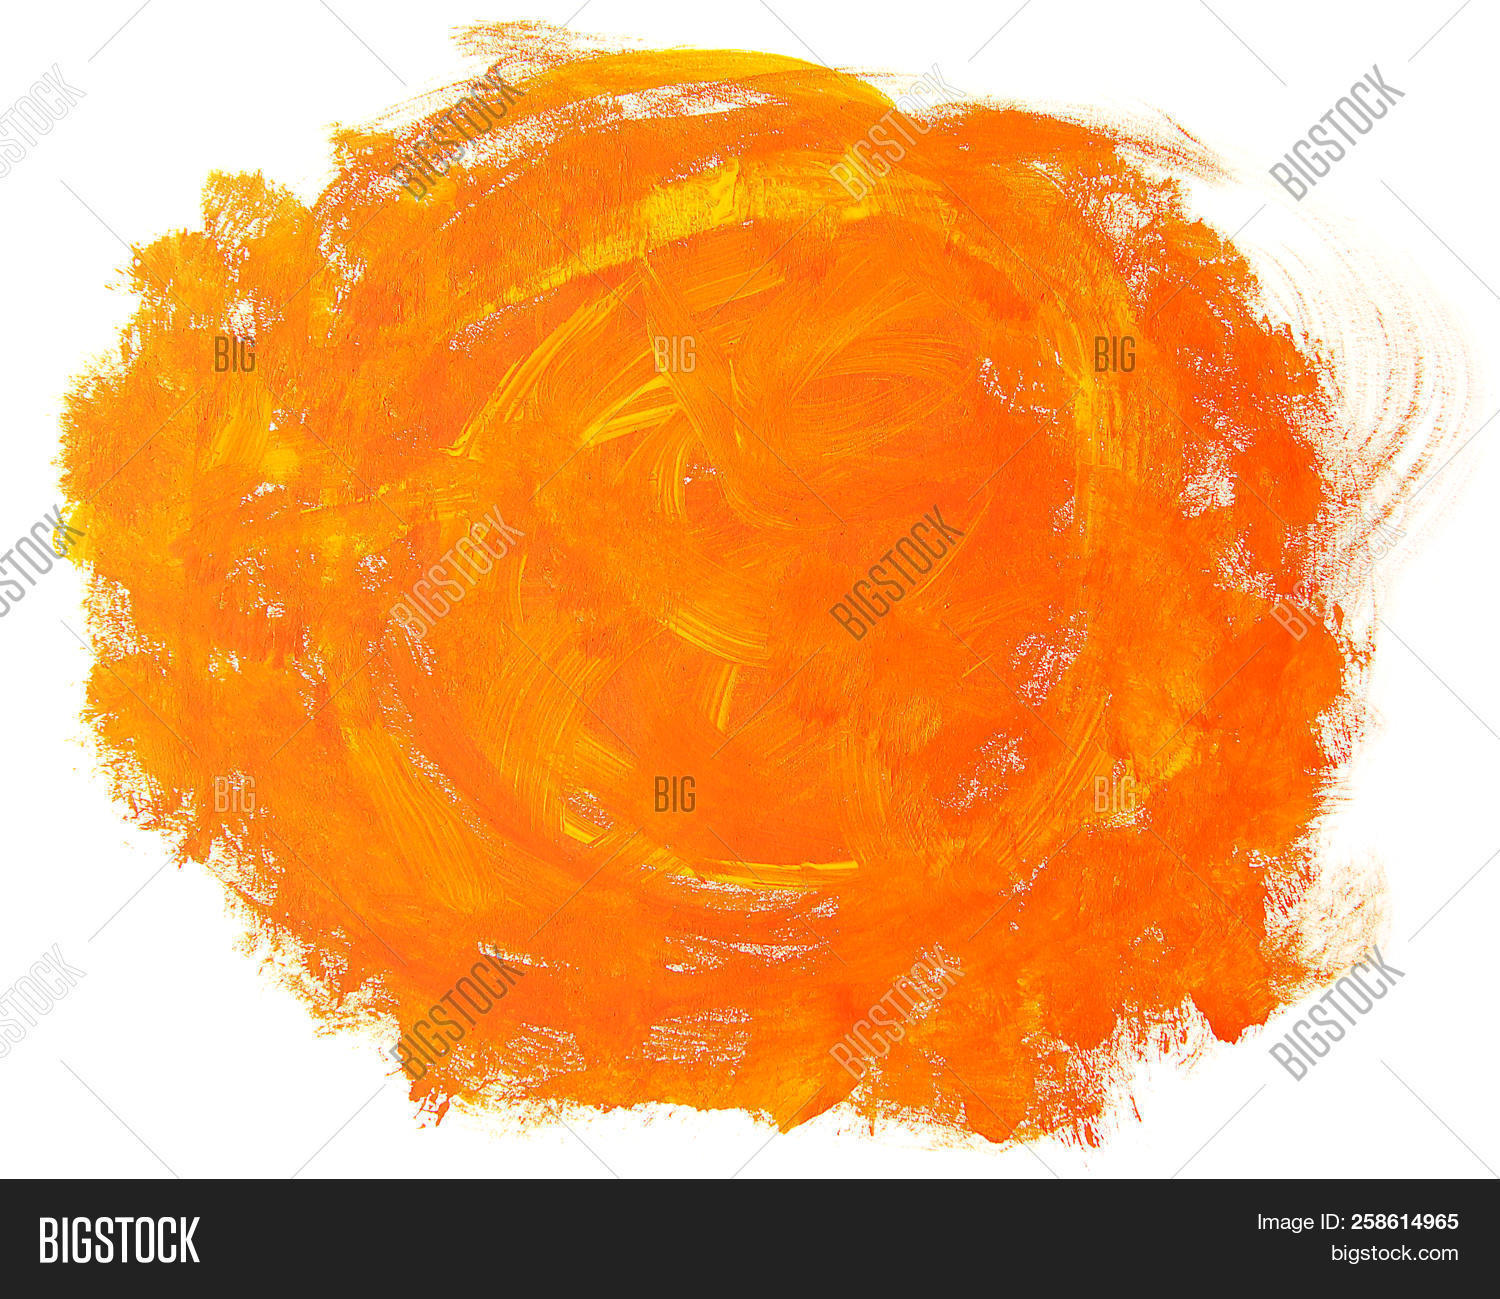 Abstract Orange Painting Isolated On White Background